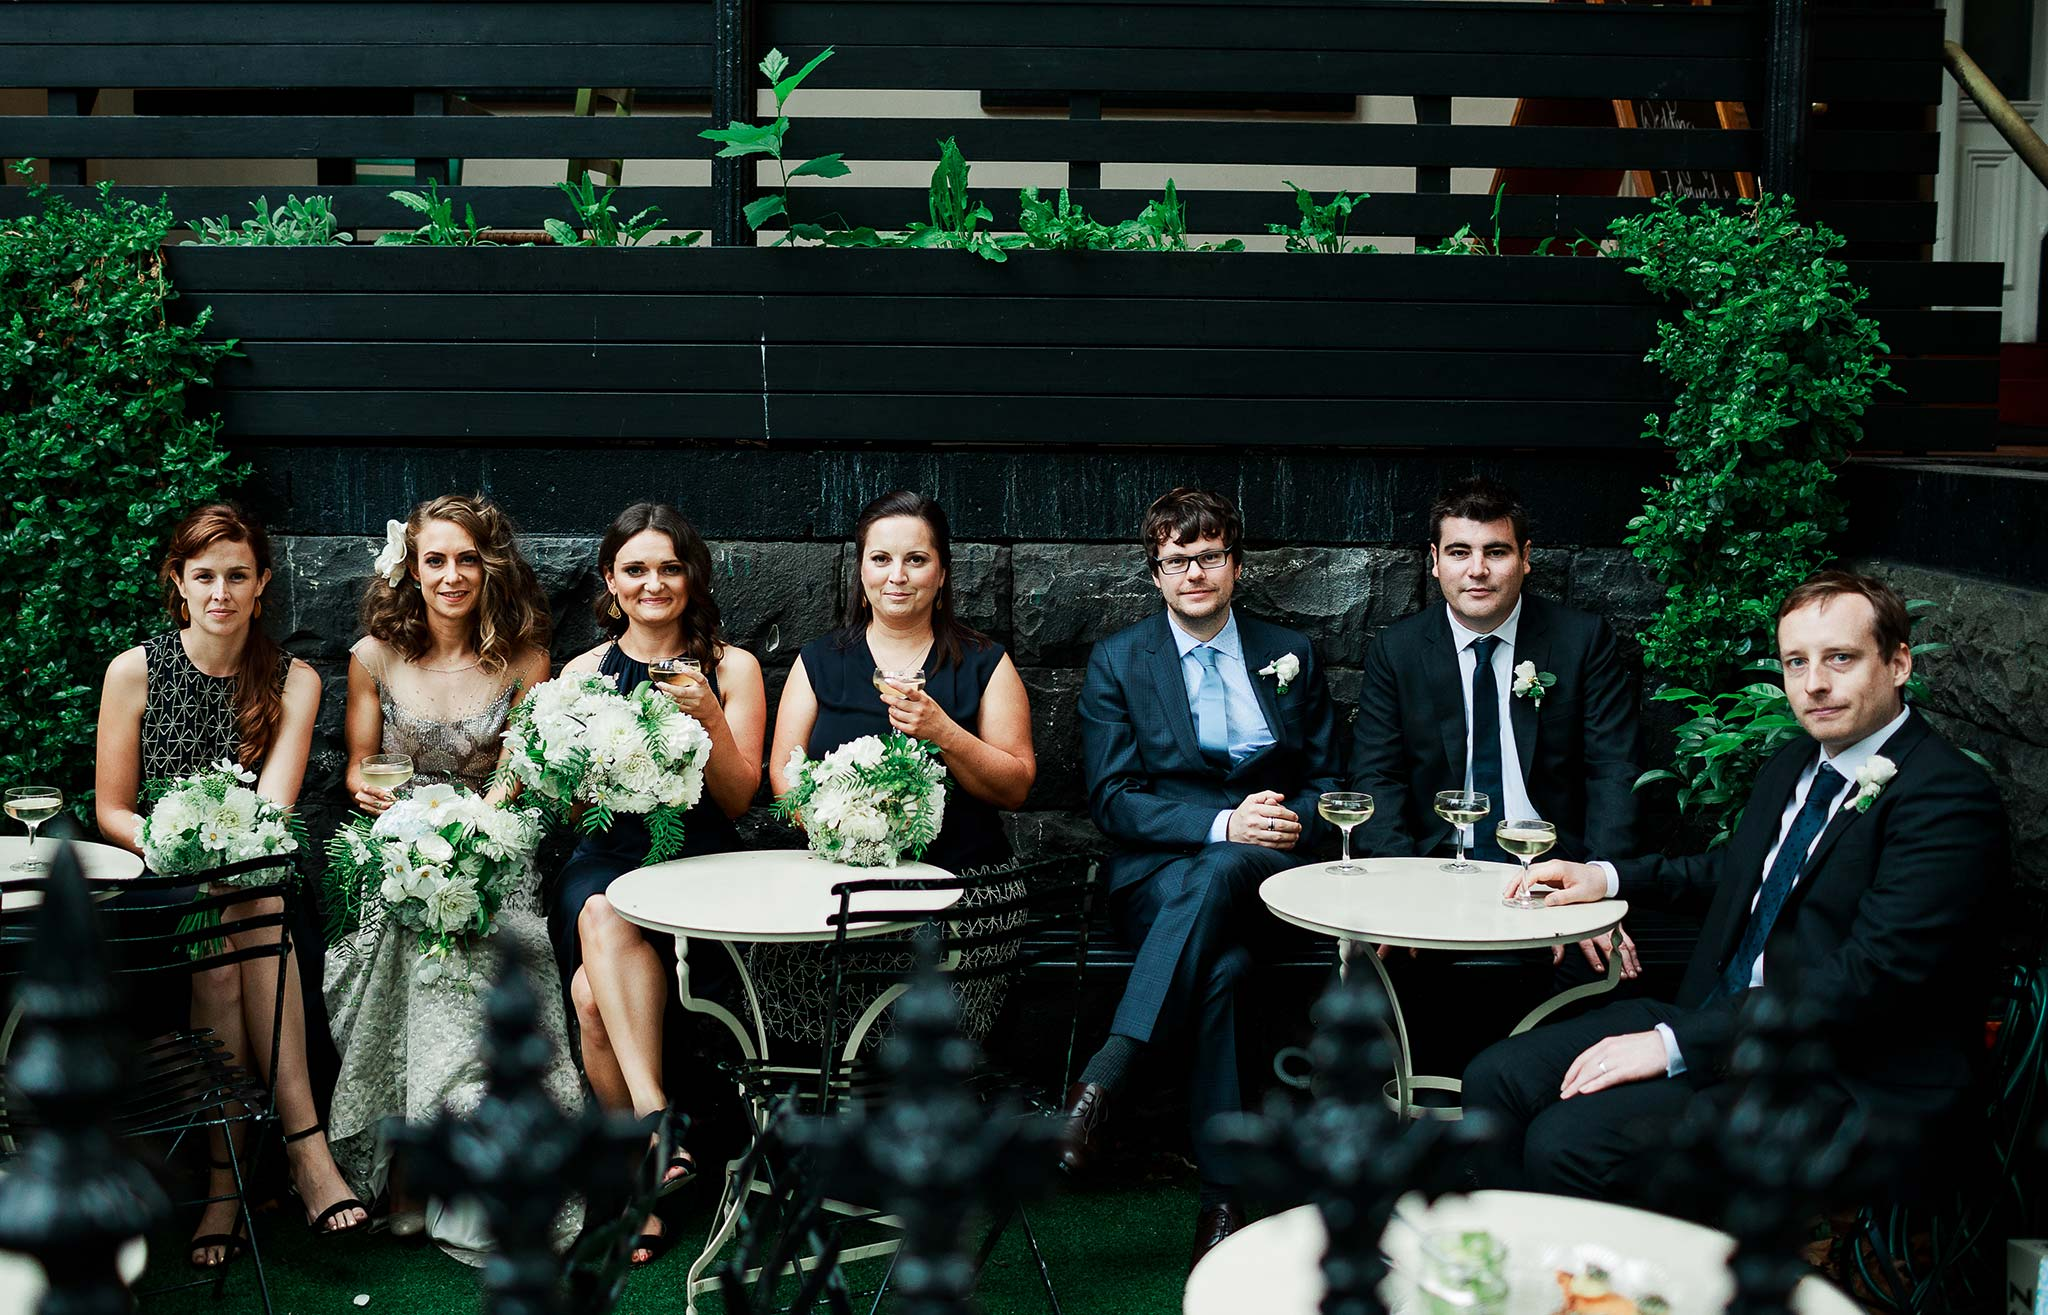 Epocha-Melbourne-Wedding-Photographer-bridal-party-portrait